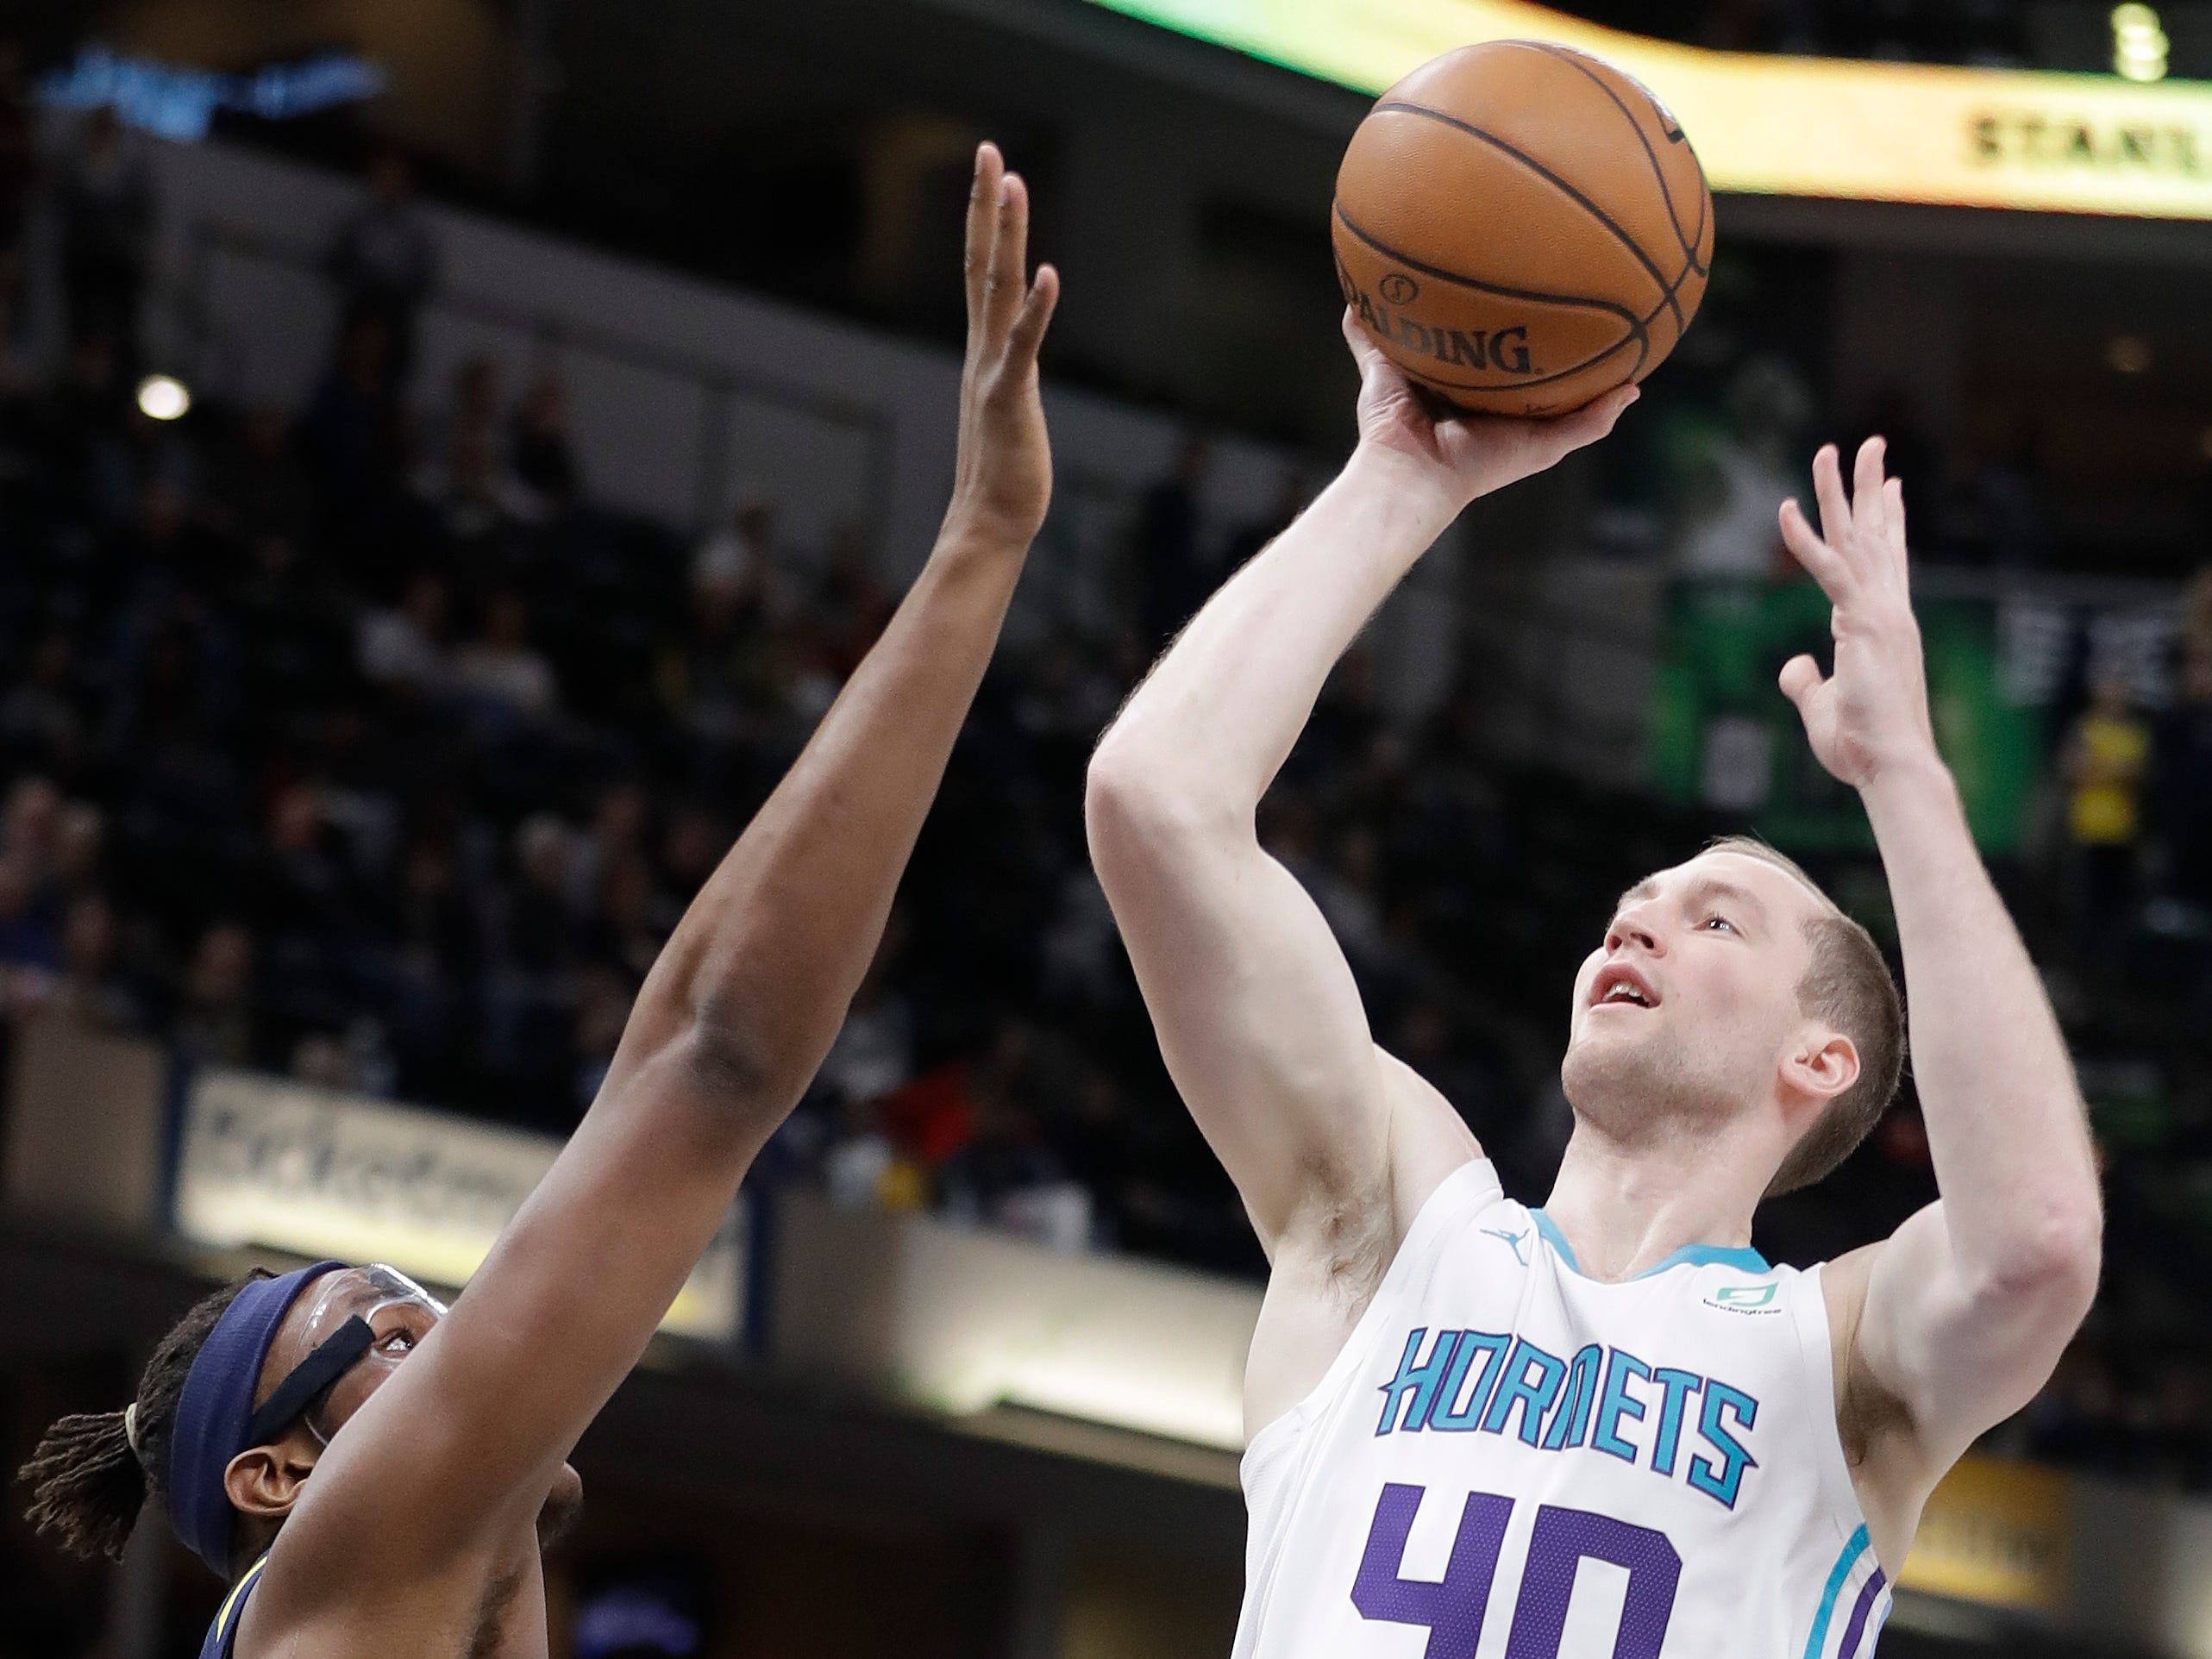 Charlotte Hornets' Cody Zeller (40) shoots over Indiana Pacers' Myles Turner during the first half of an NBA basketball game, Monday, Feb. 11, 2019, in Indianapolis.